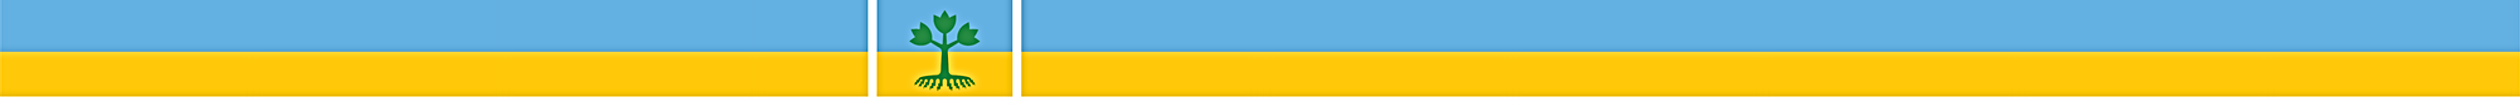 Flag BANNER FROM AG 10-22.png